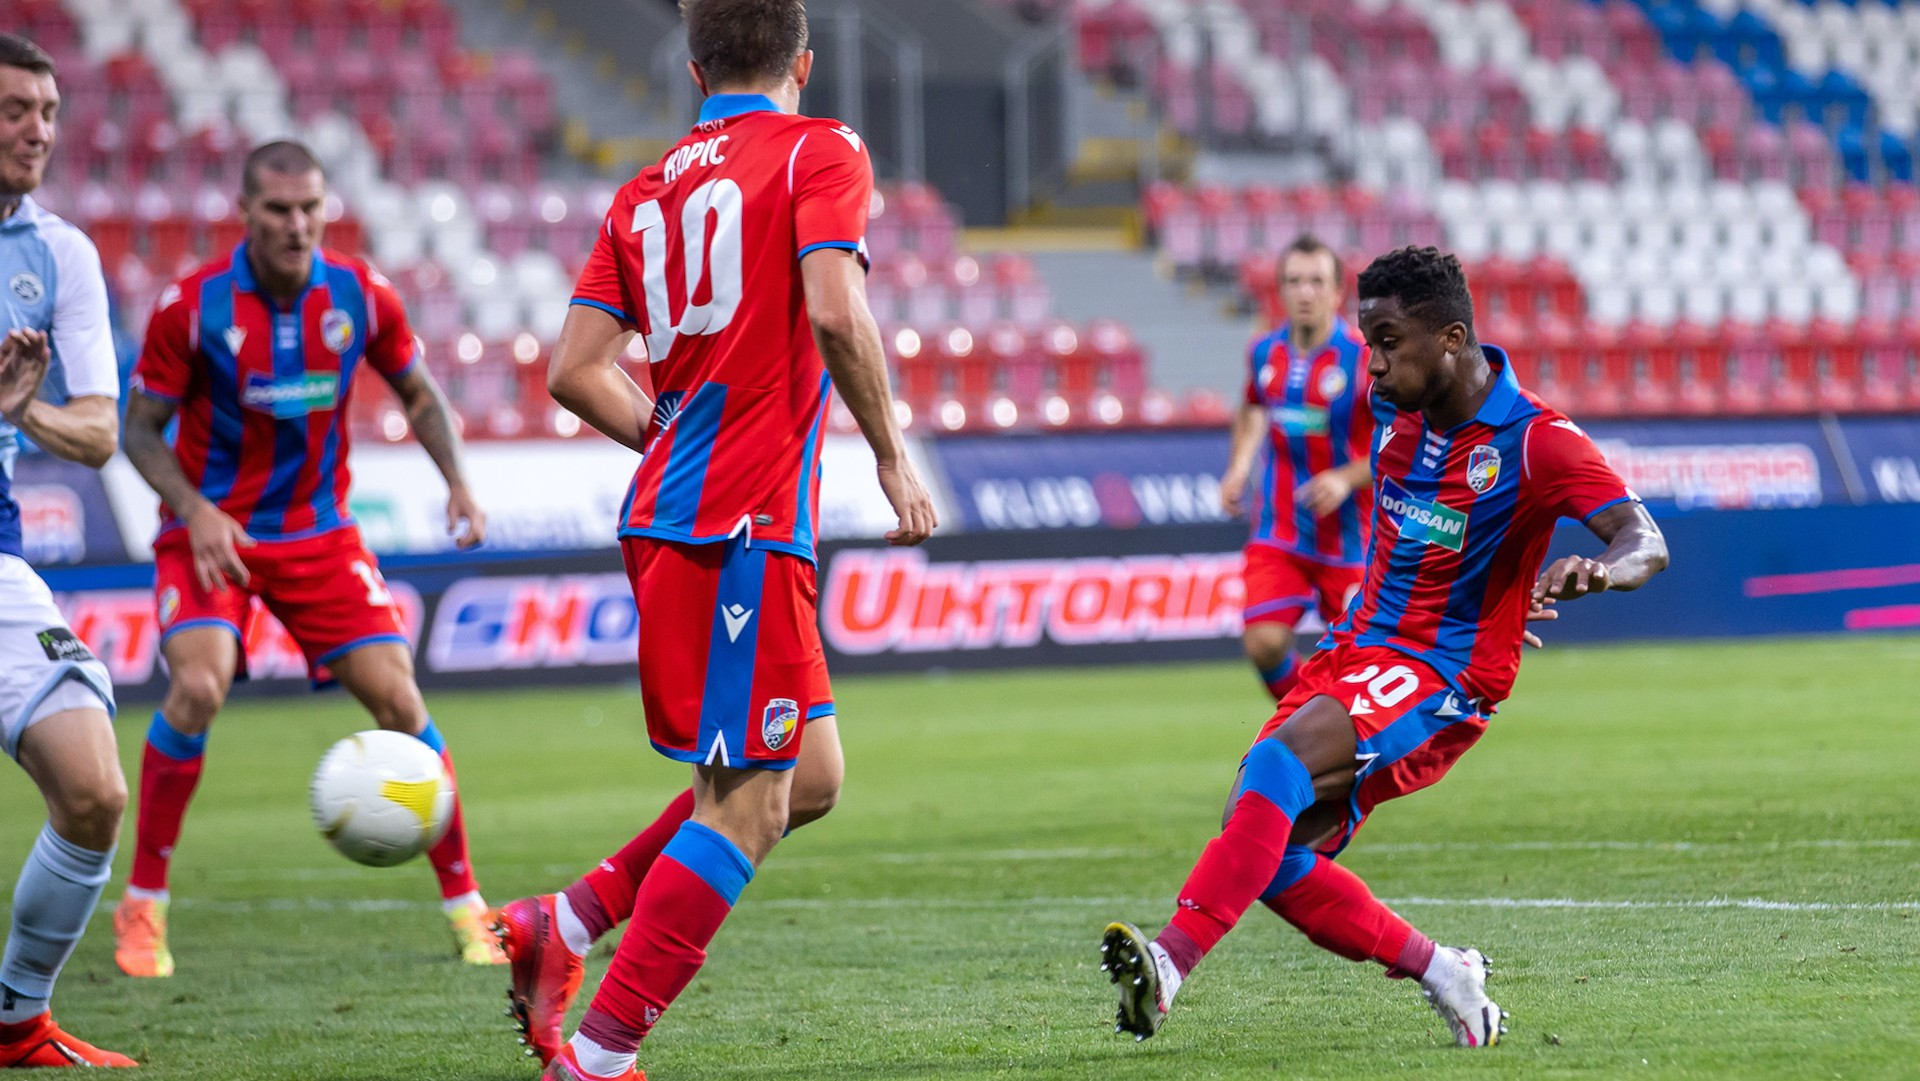 FC Viktoria Plzeň